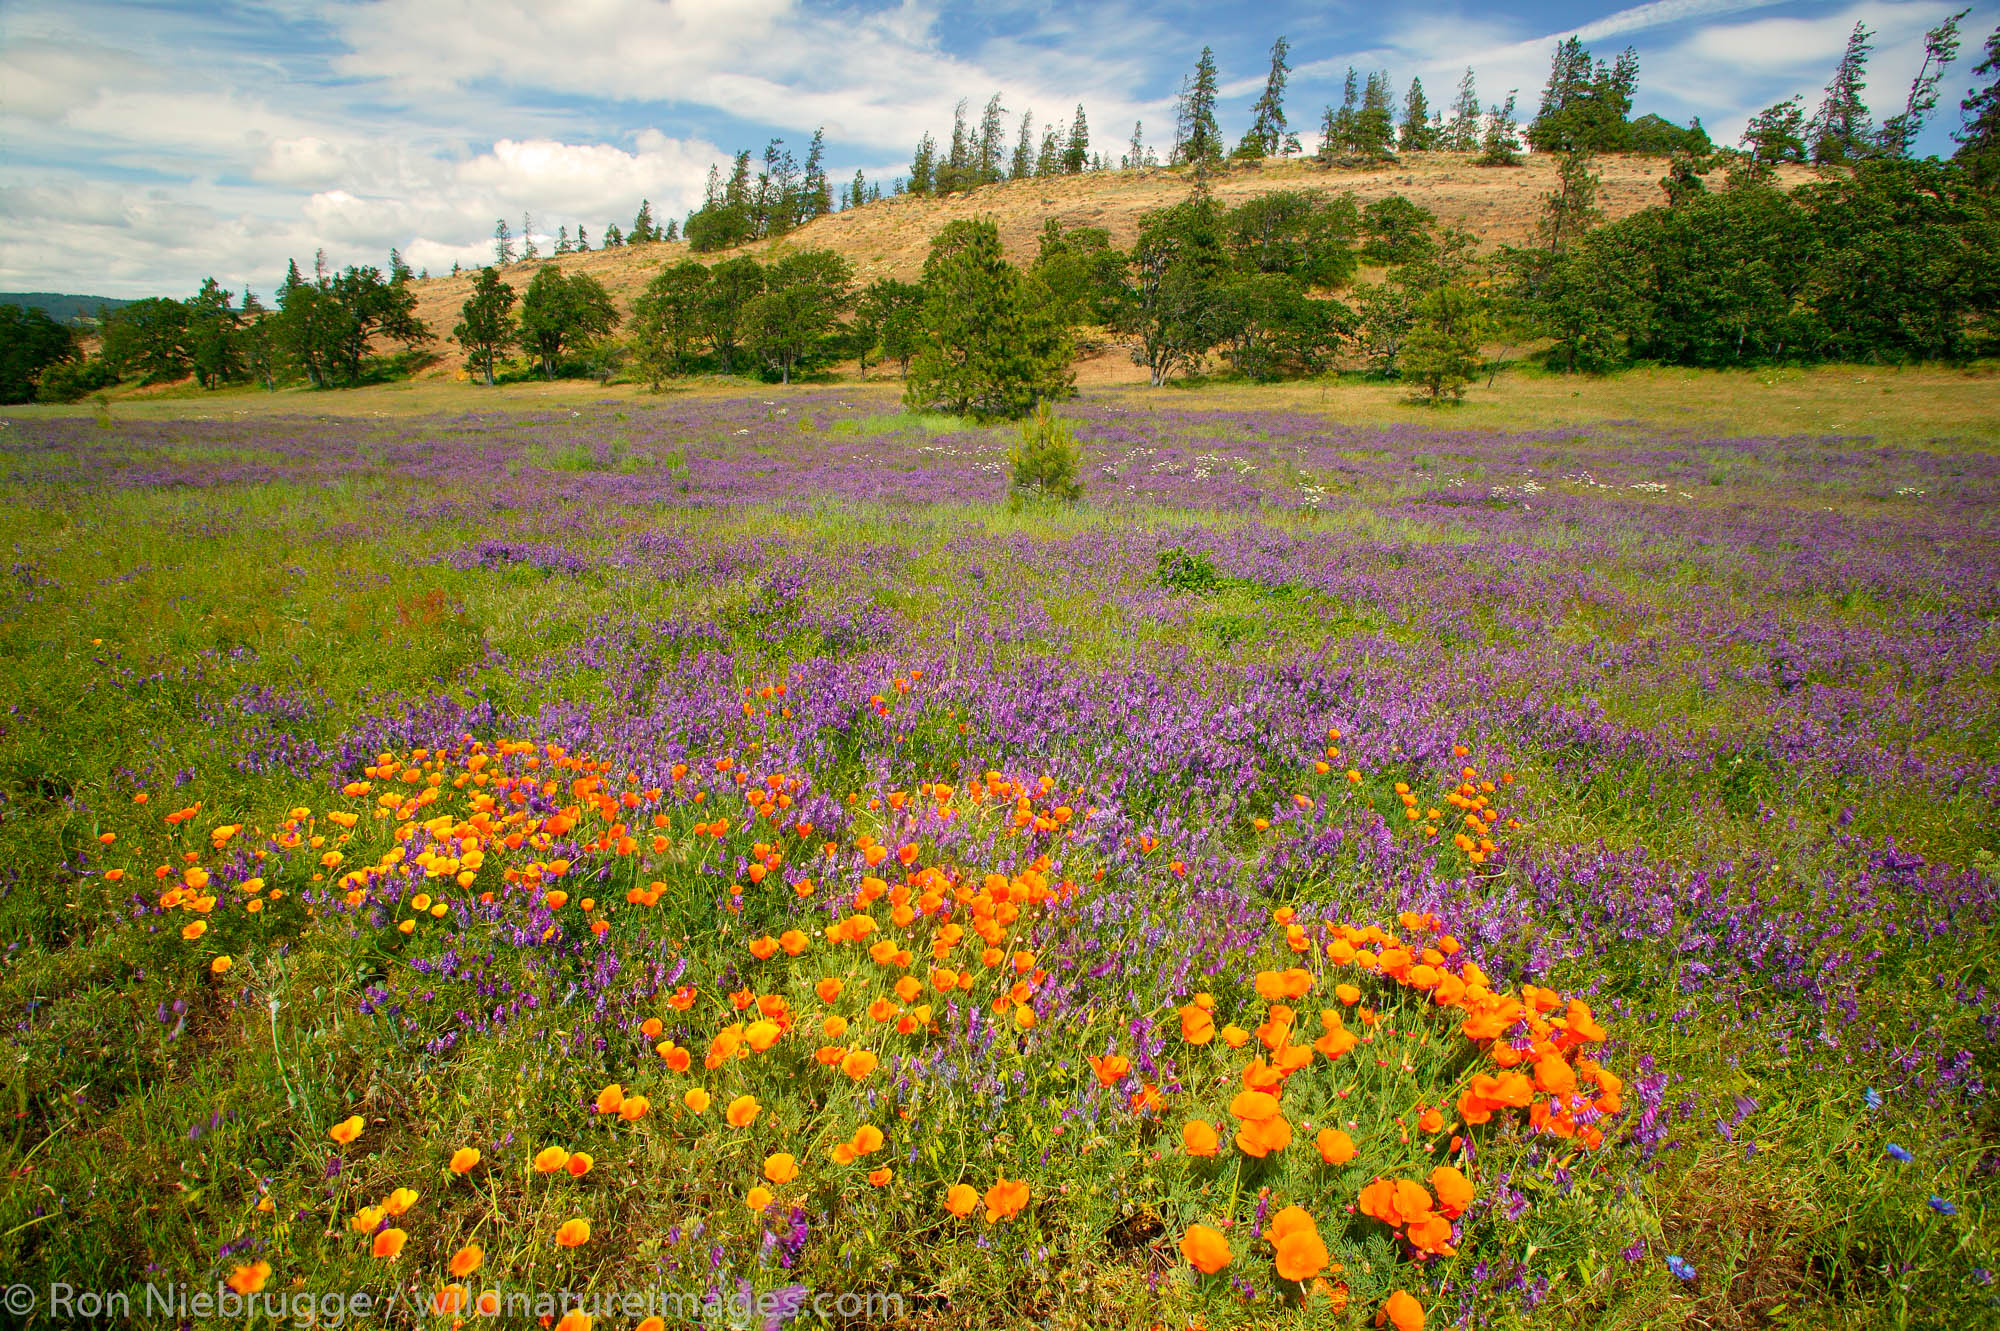 Wildflowers along the Historic Columbia River Highway, Columbia River Gorge National Scenic Area, Oregon.